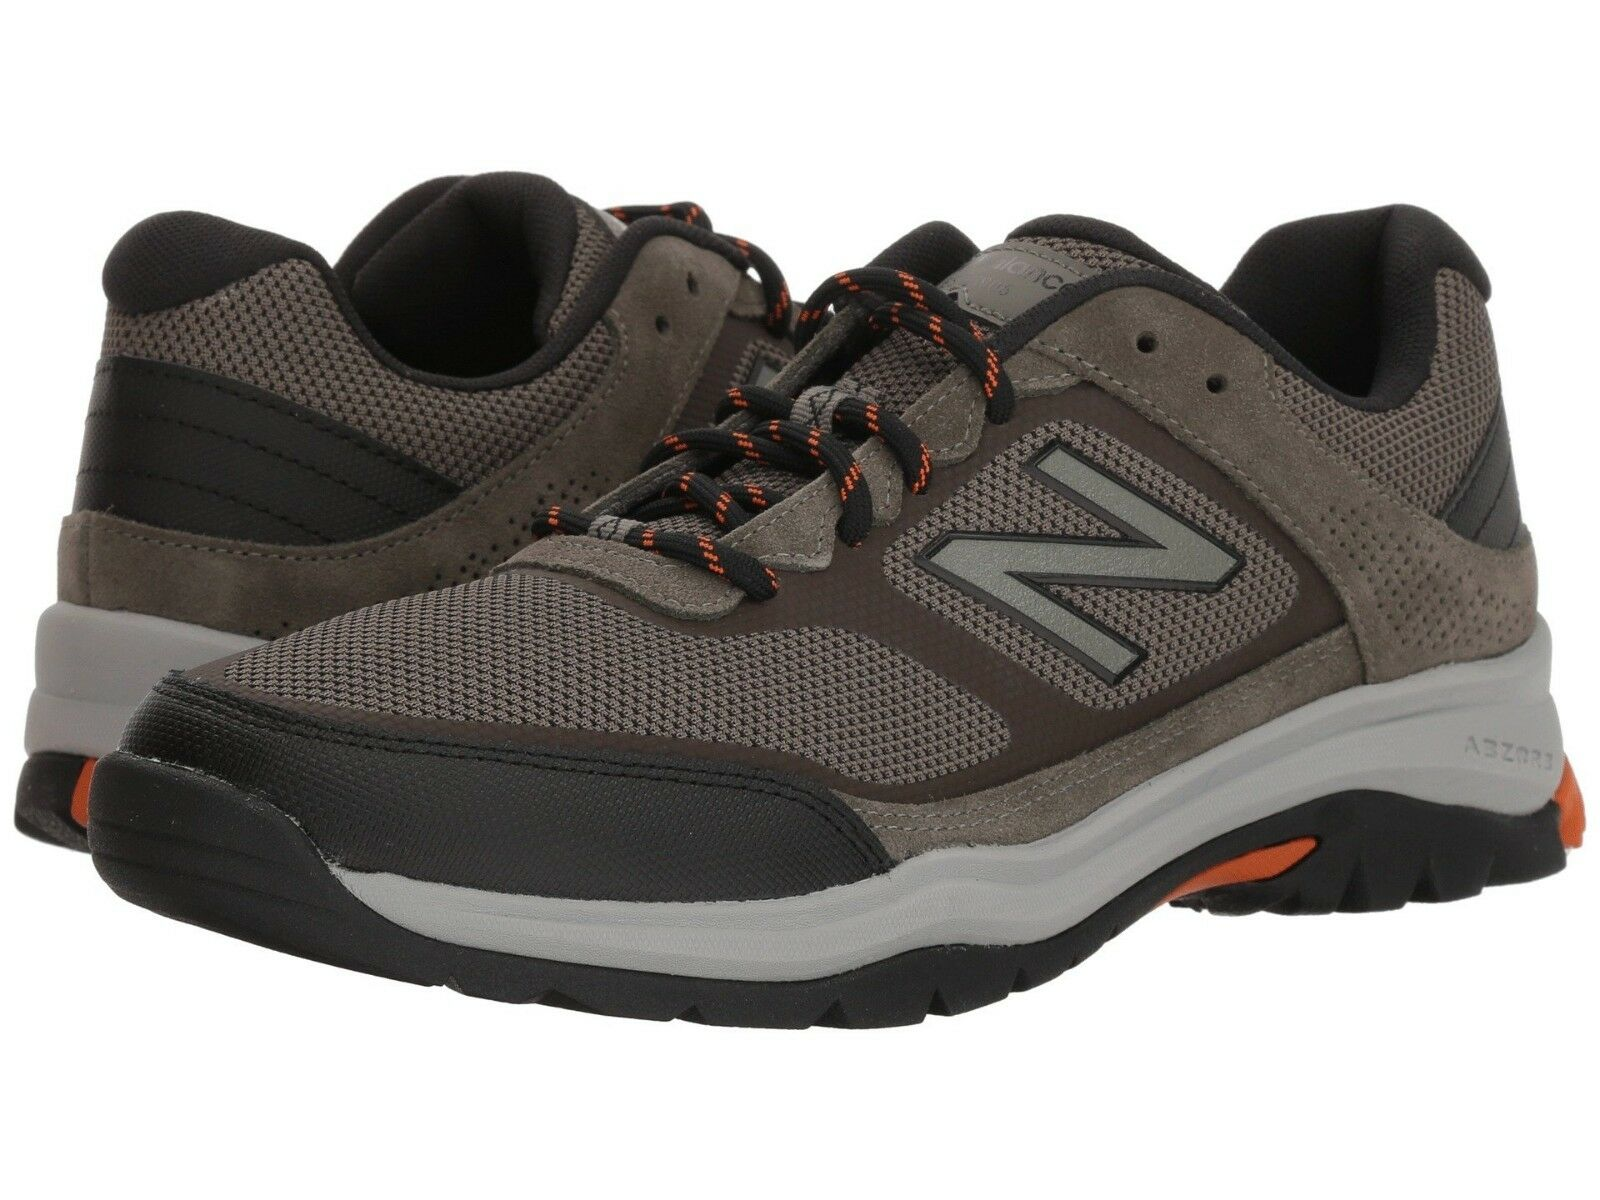 NEW Mens New Balance 669v1 Military Green Black Leather Athletic Hiking shoes